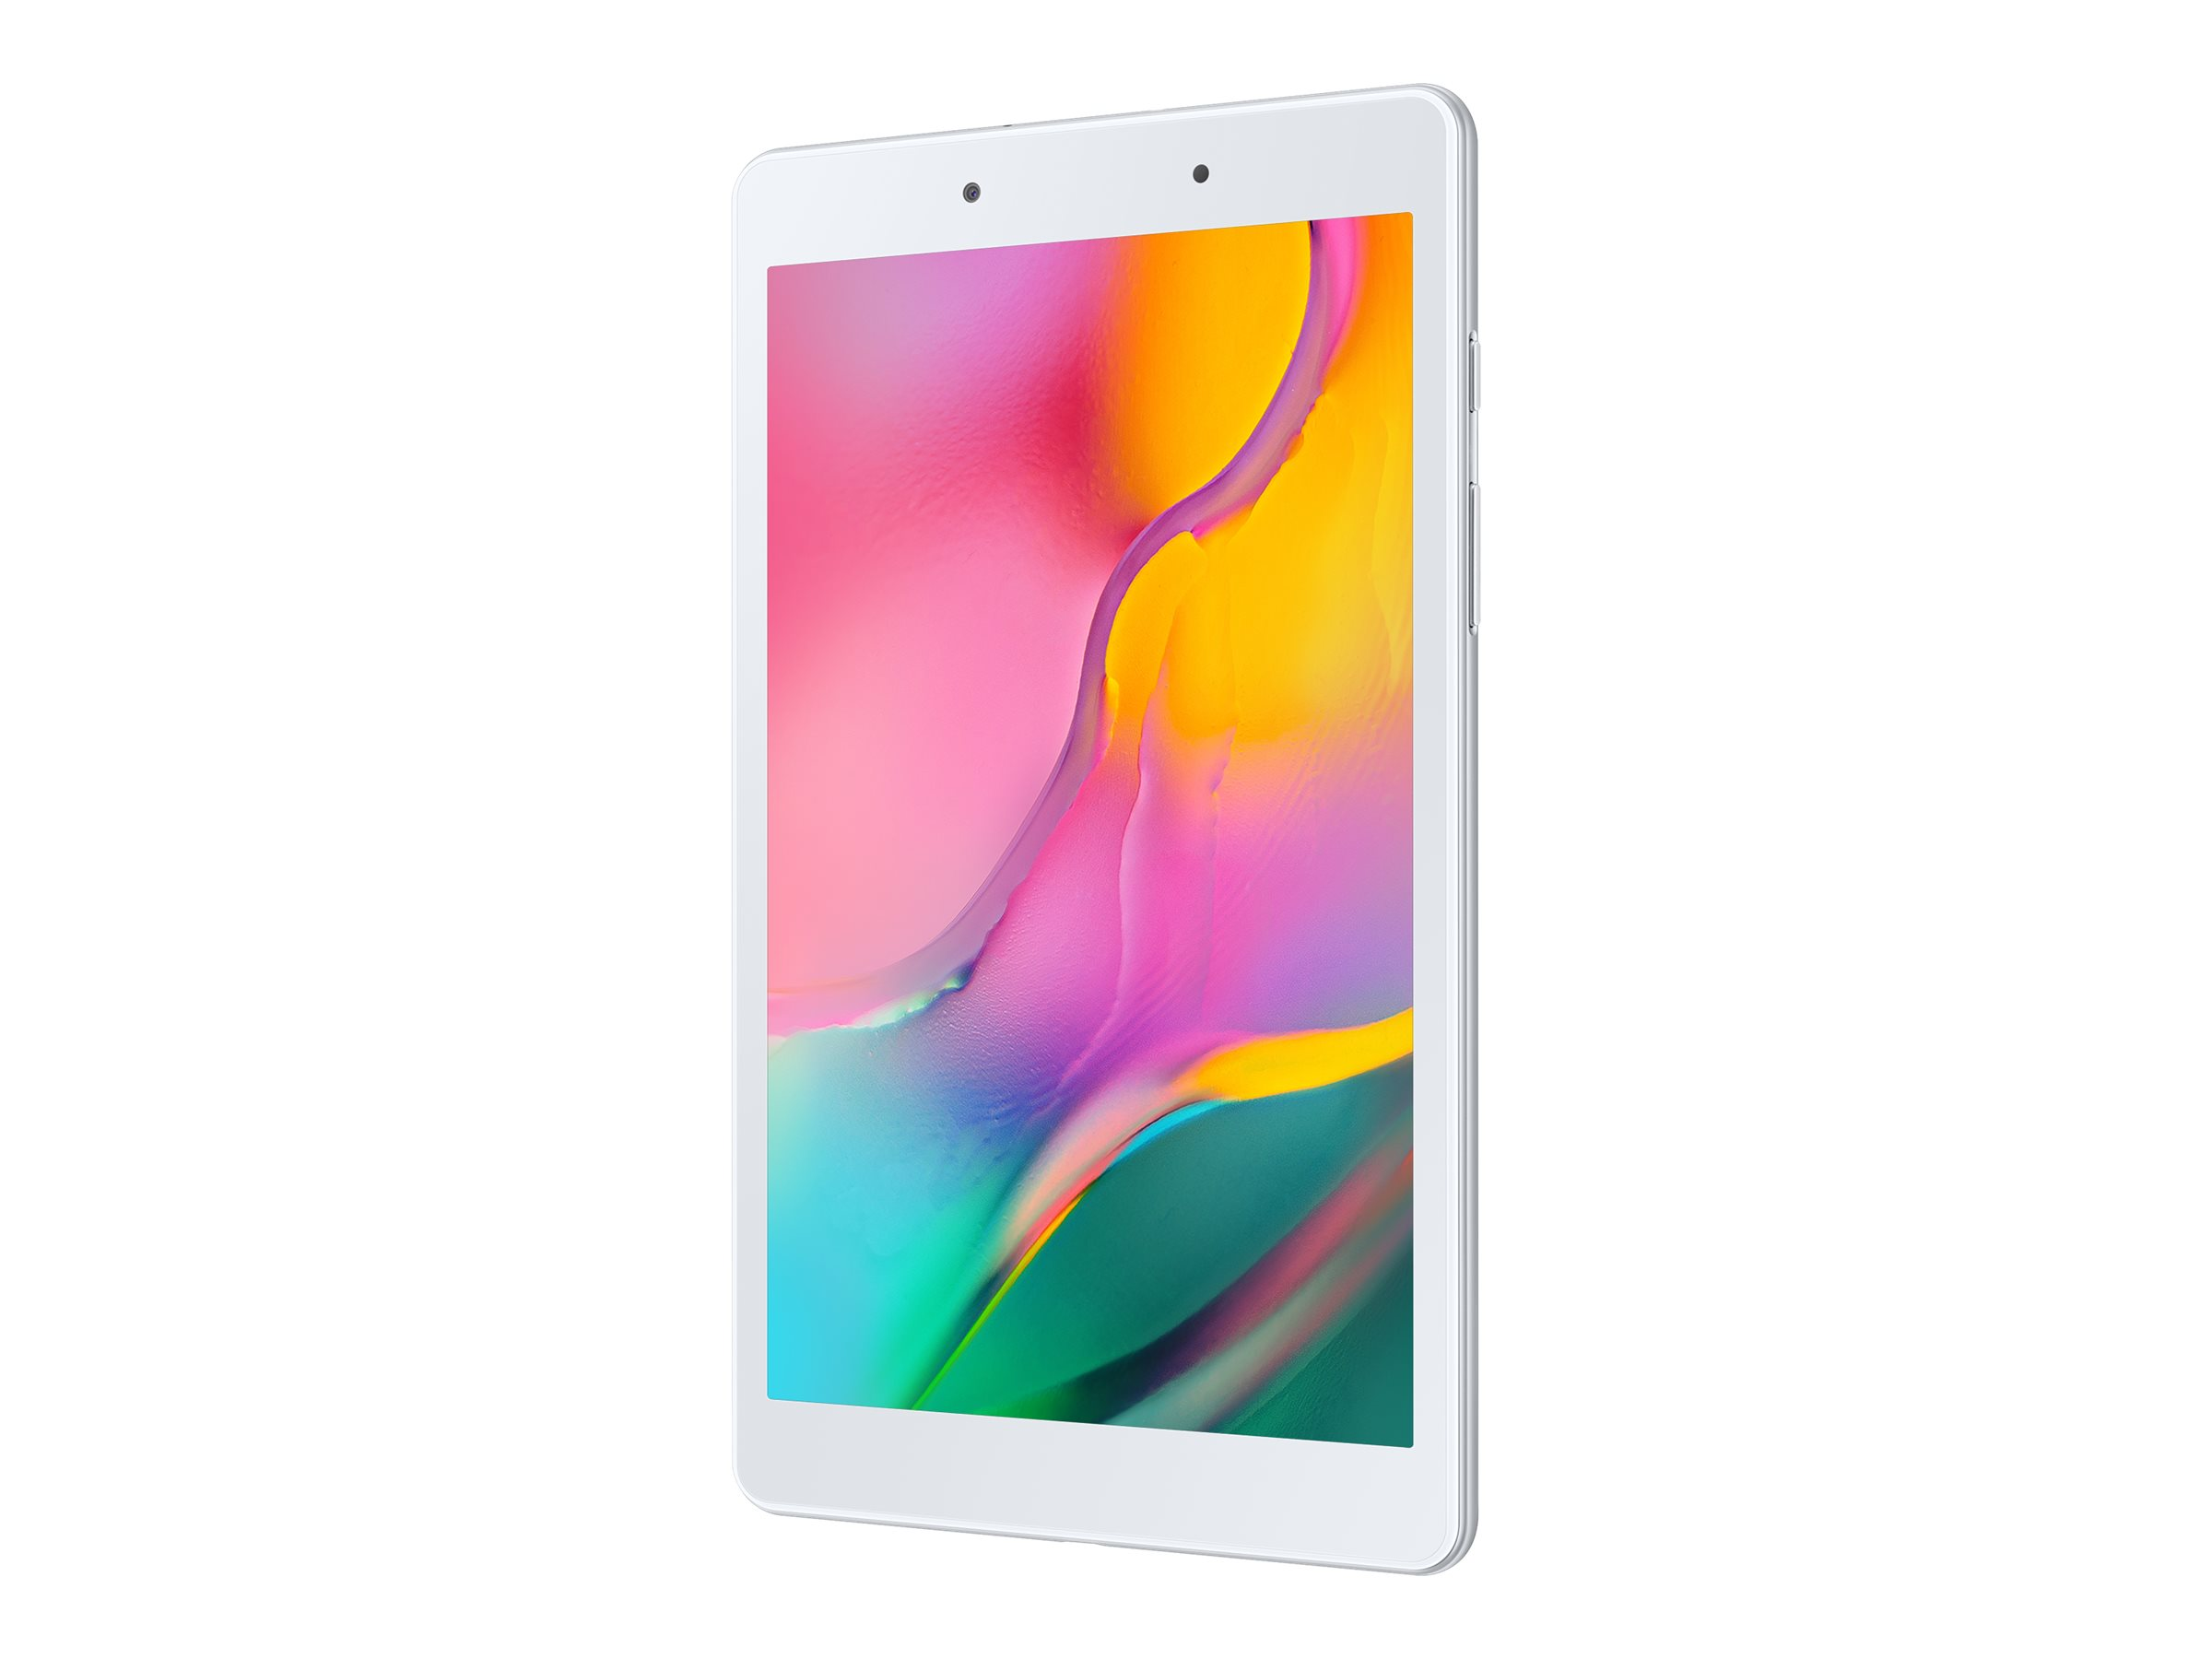 Samsung Galaxy Tab A (2019) - tablet - Android 9.0 (Pie) - 128 GB - 10.1""